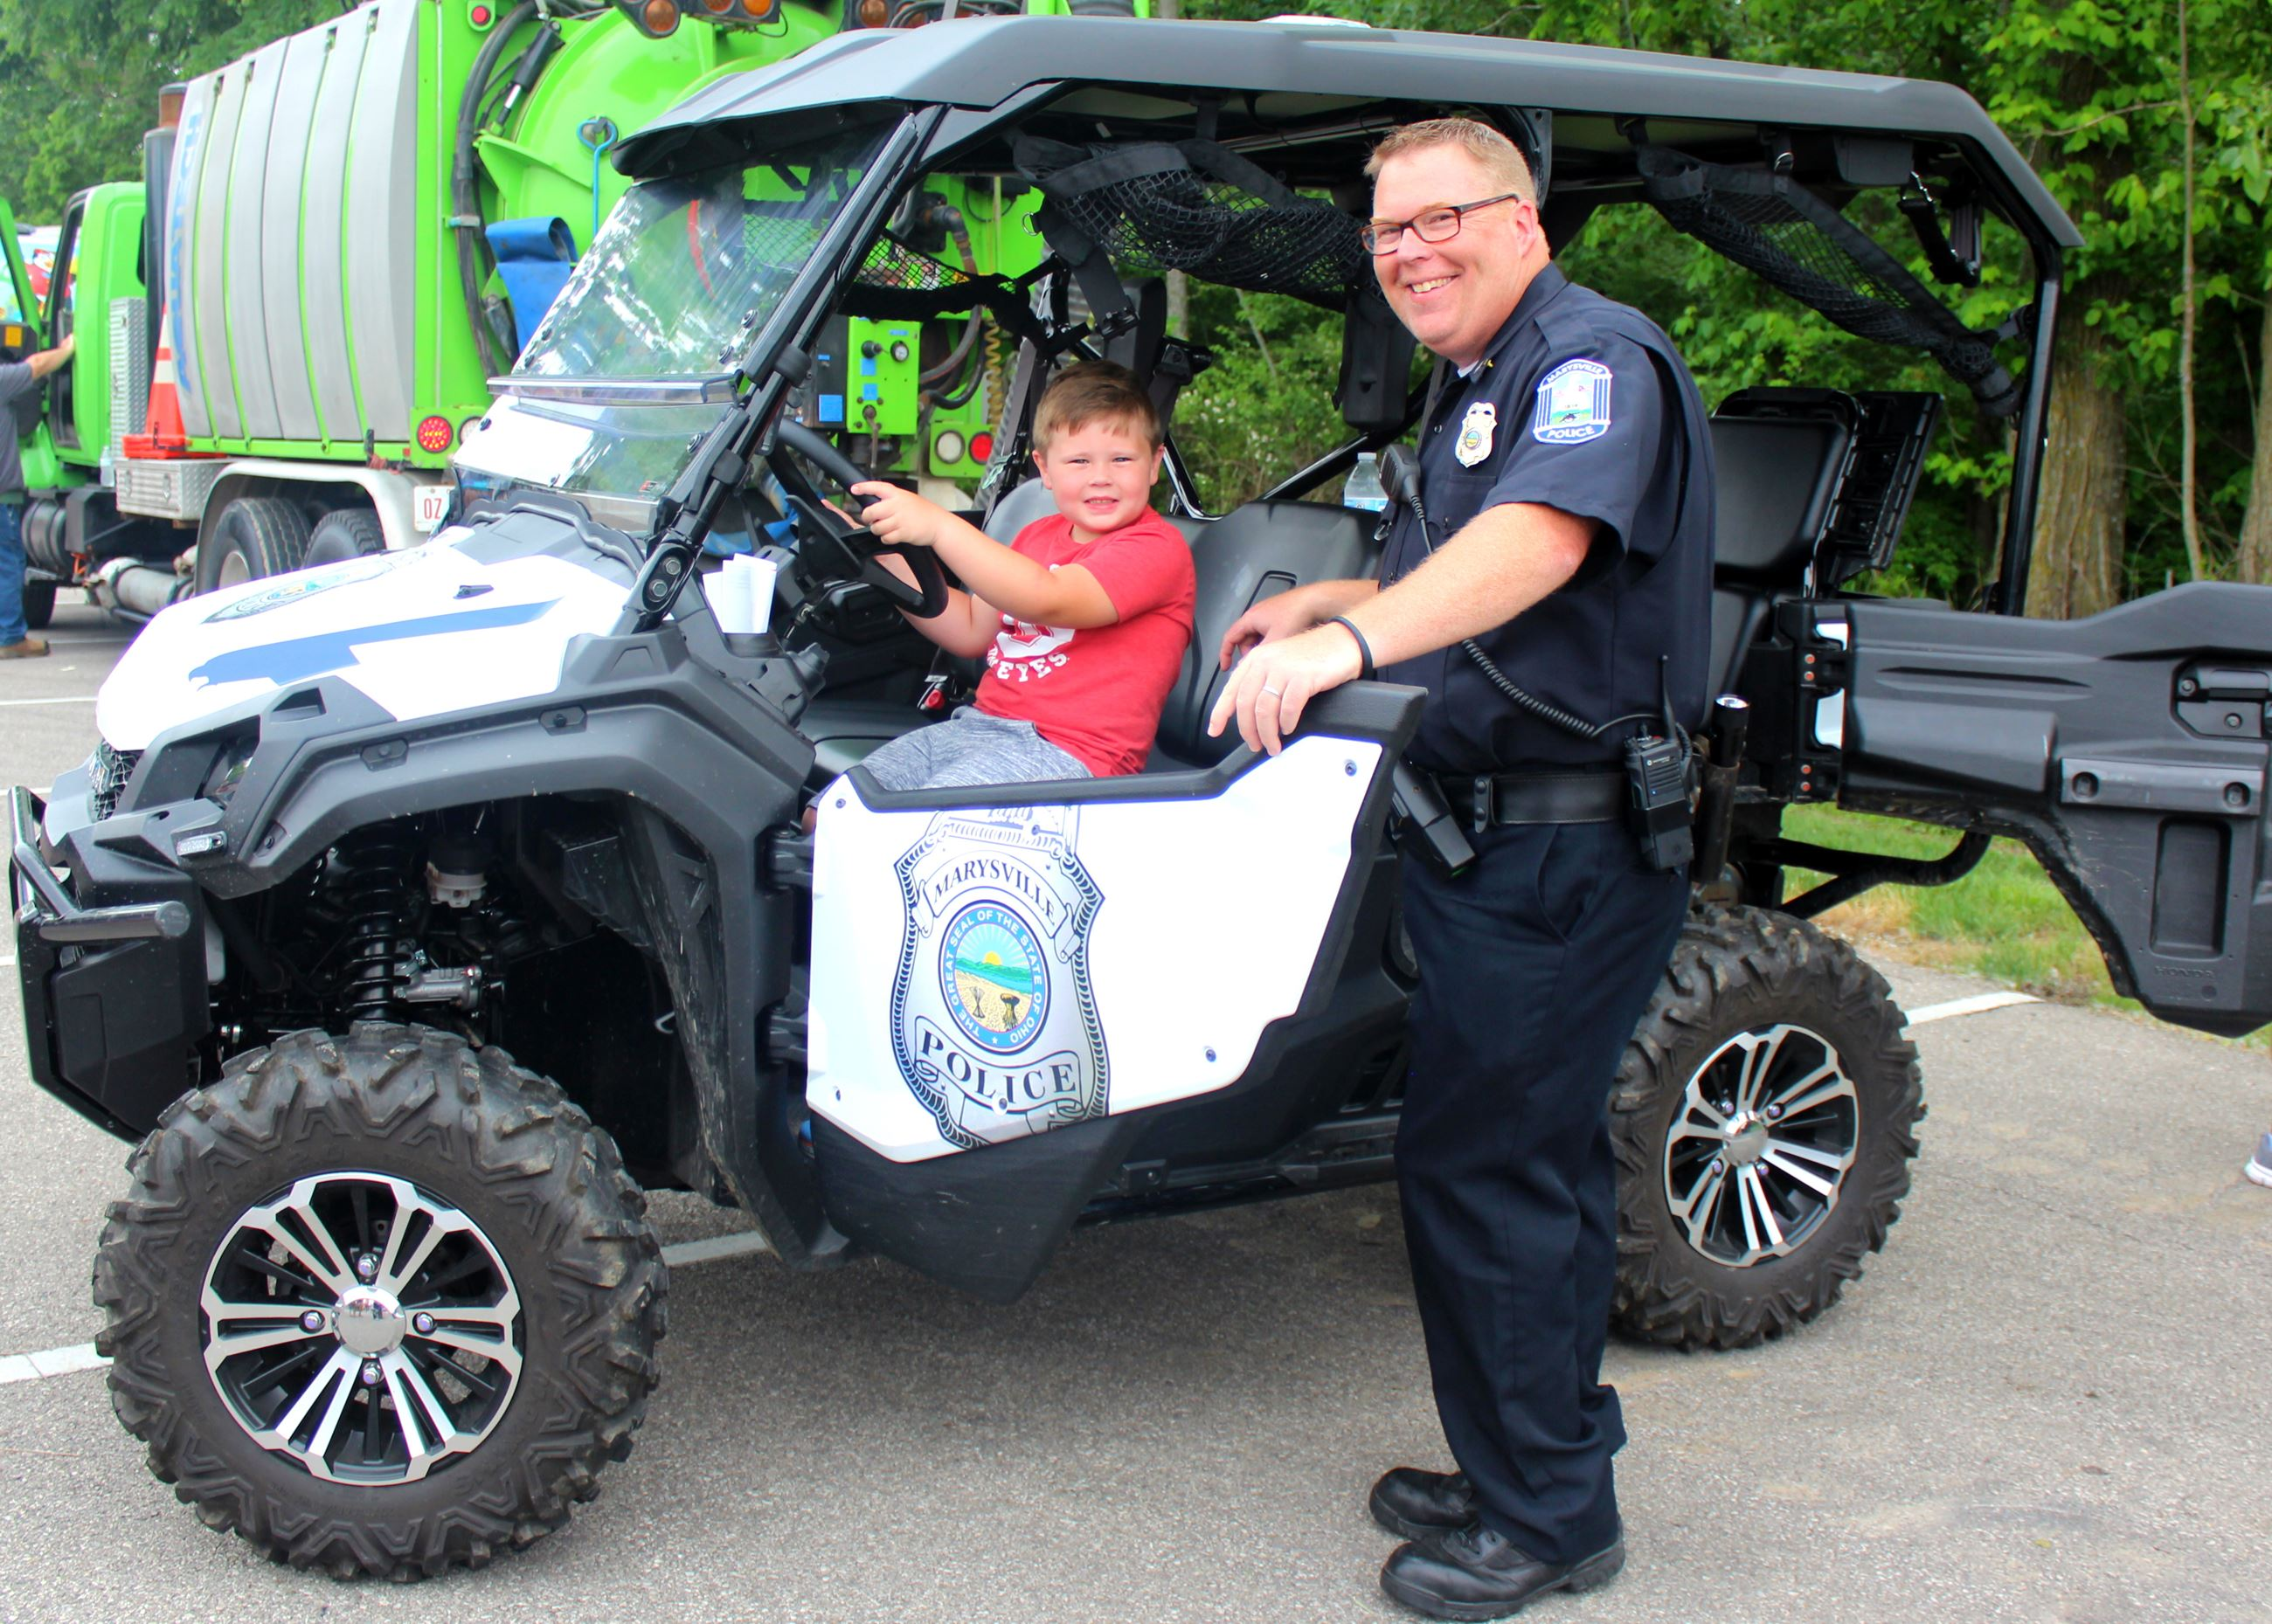 Photo of small boy and Sgt McGlenn in Police UTV